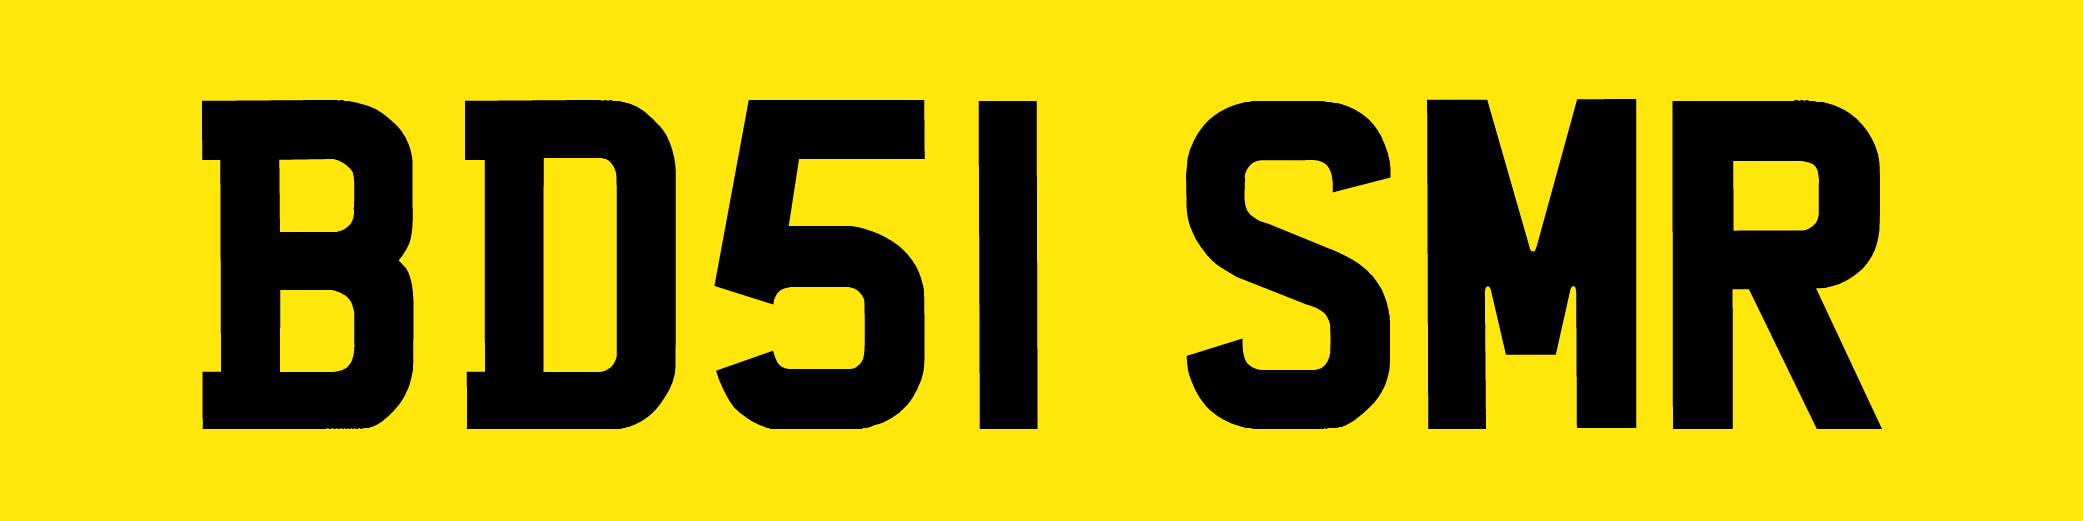 Registration plate rules